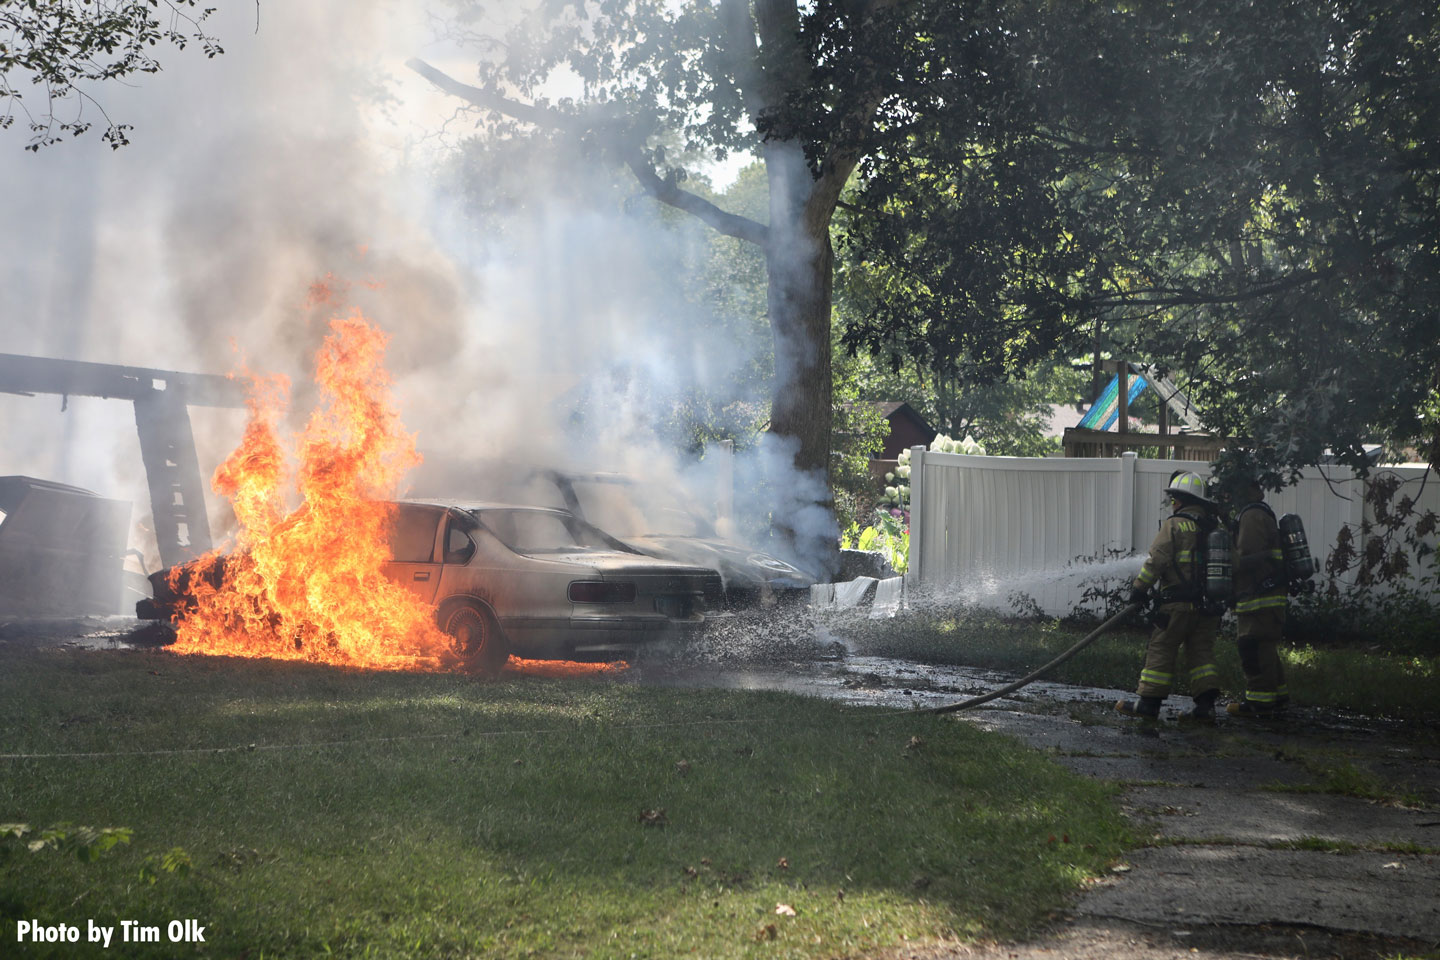 The fire spread to multiple vehicles and a fence.